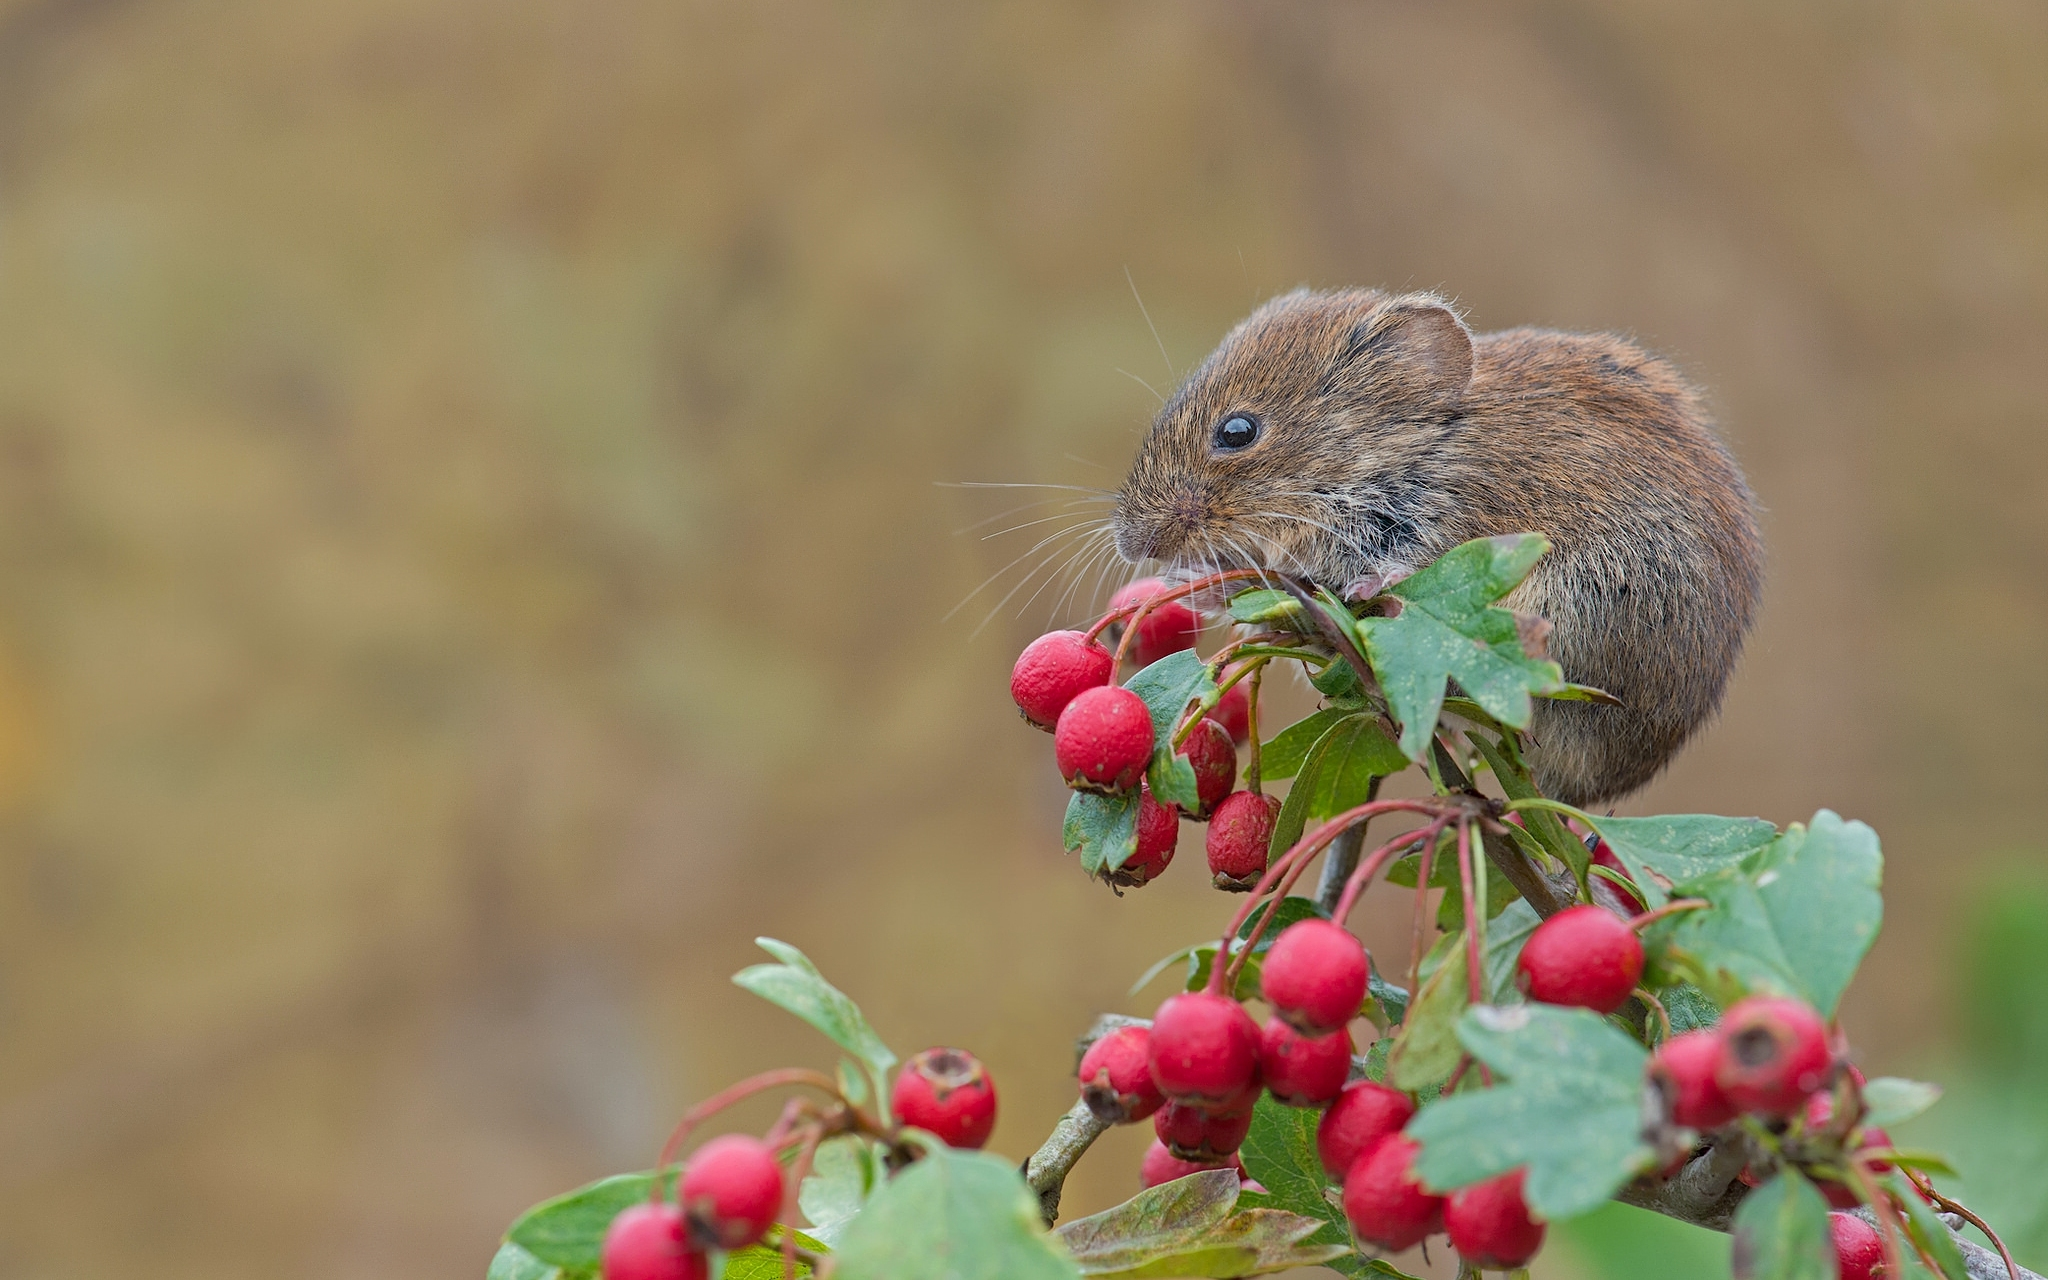 95544 download wallpaper Animals, Mouse, Rodent, Red Vole, Red-Flying, Hawthorn, Berries screensavers and pictures for free